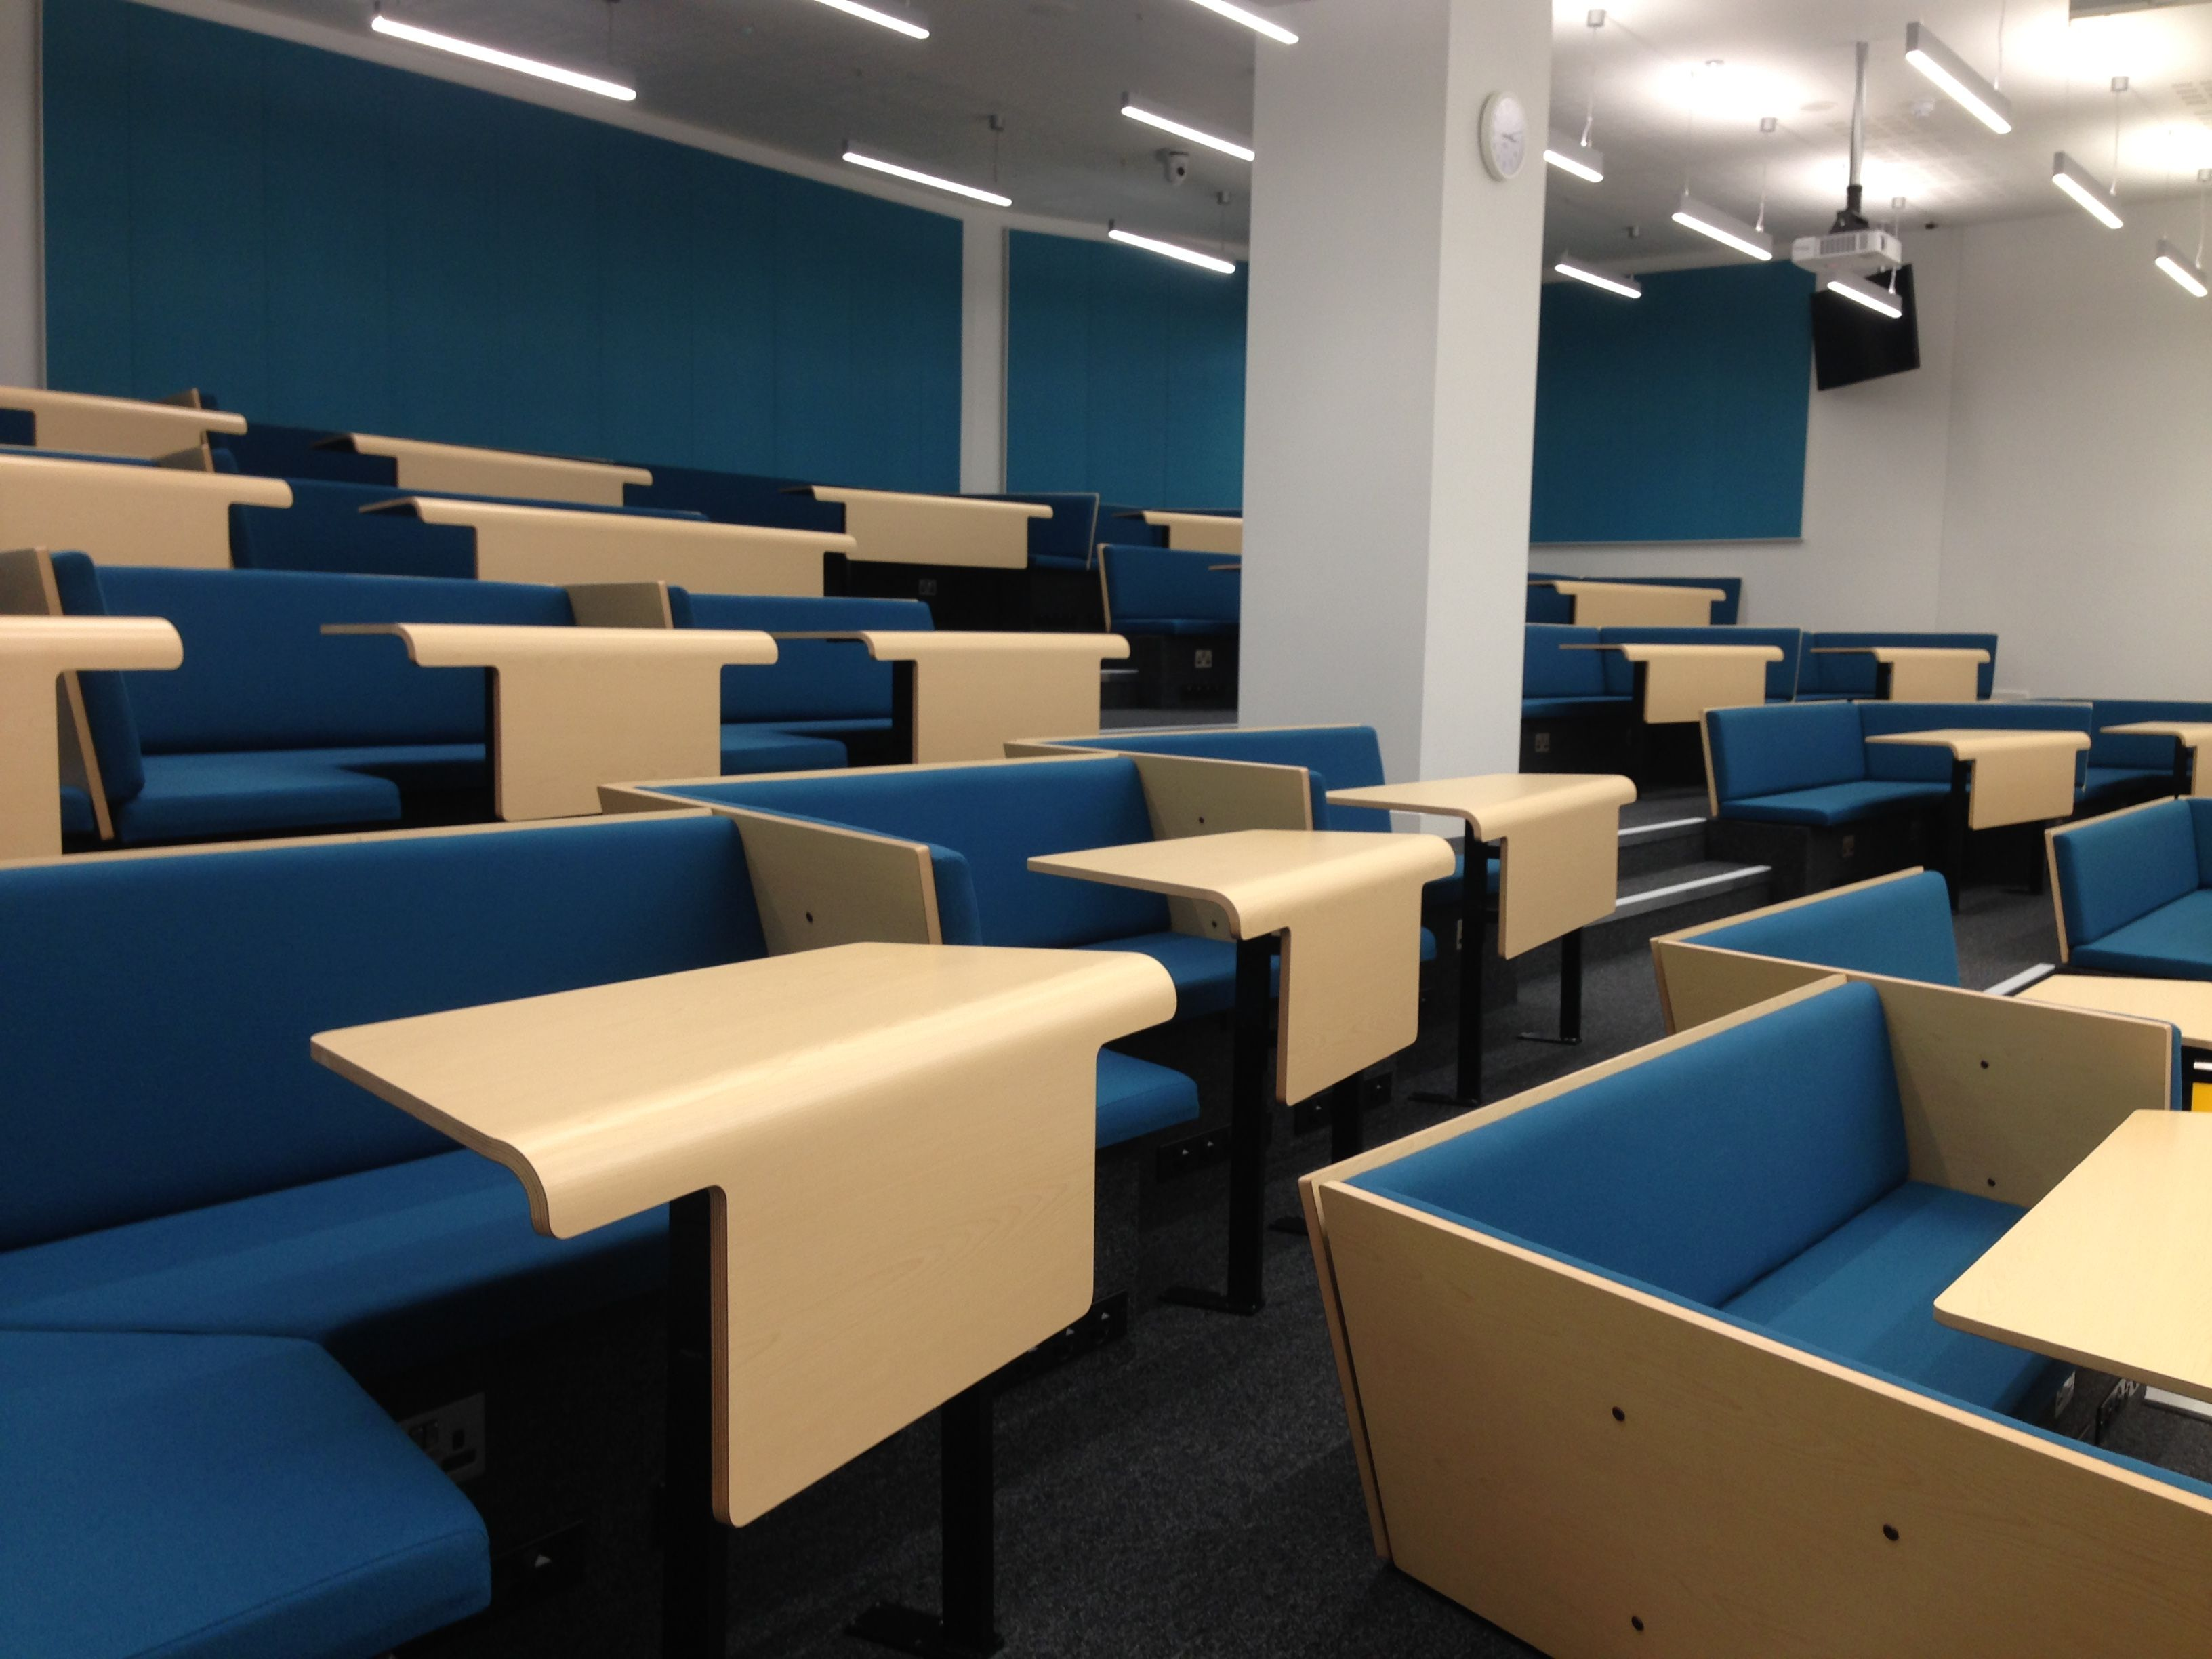 Collaborative Classroom Seating : The new cluster seating lecture theatre elg